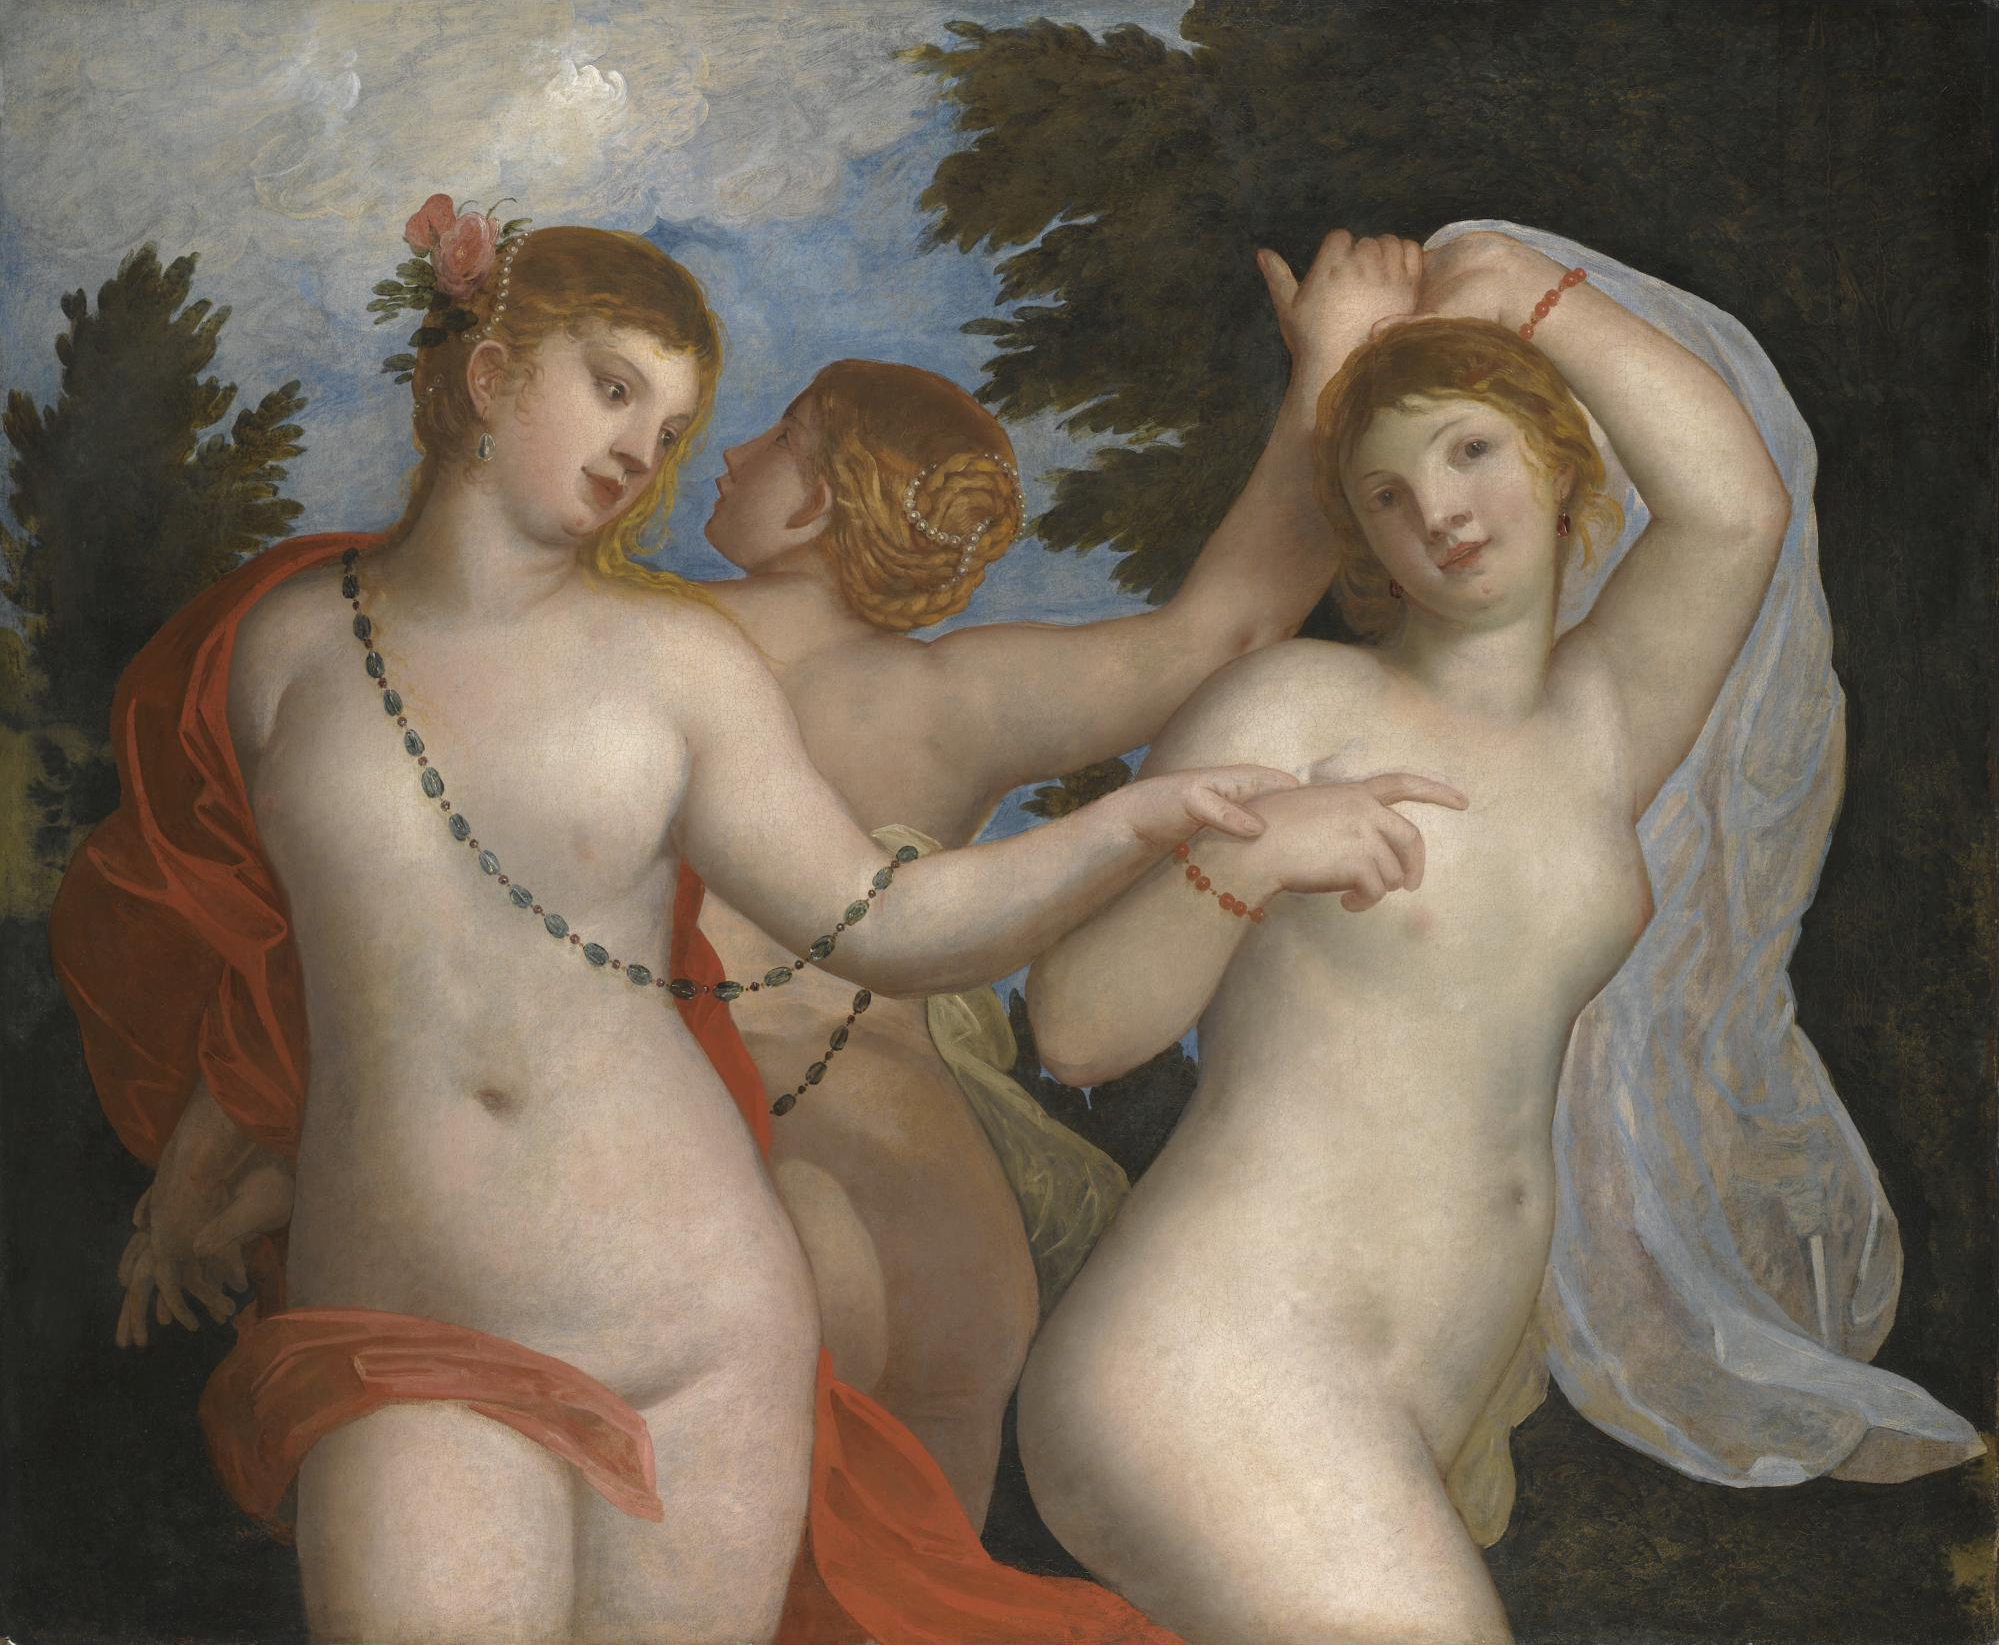 The Three Graces paintings by Padovanino